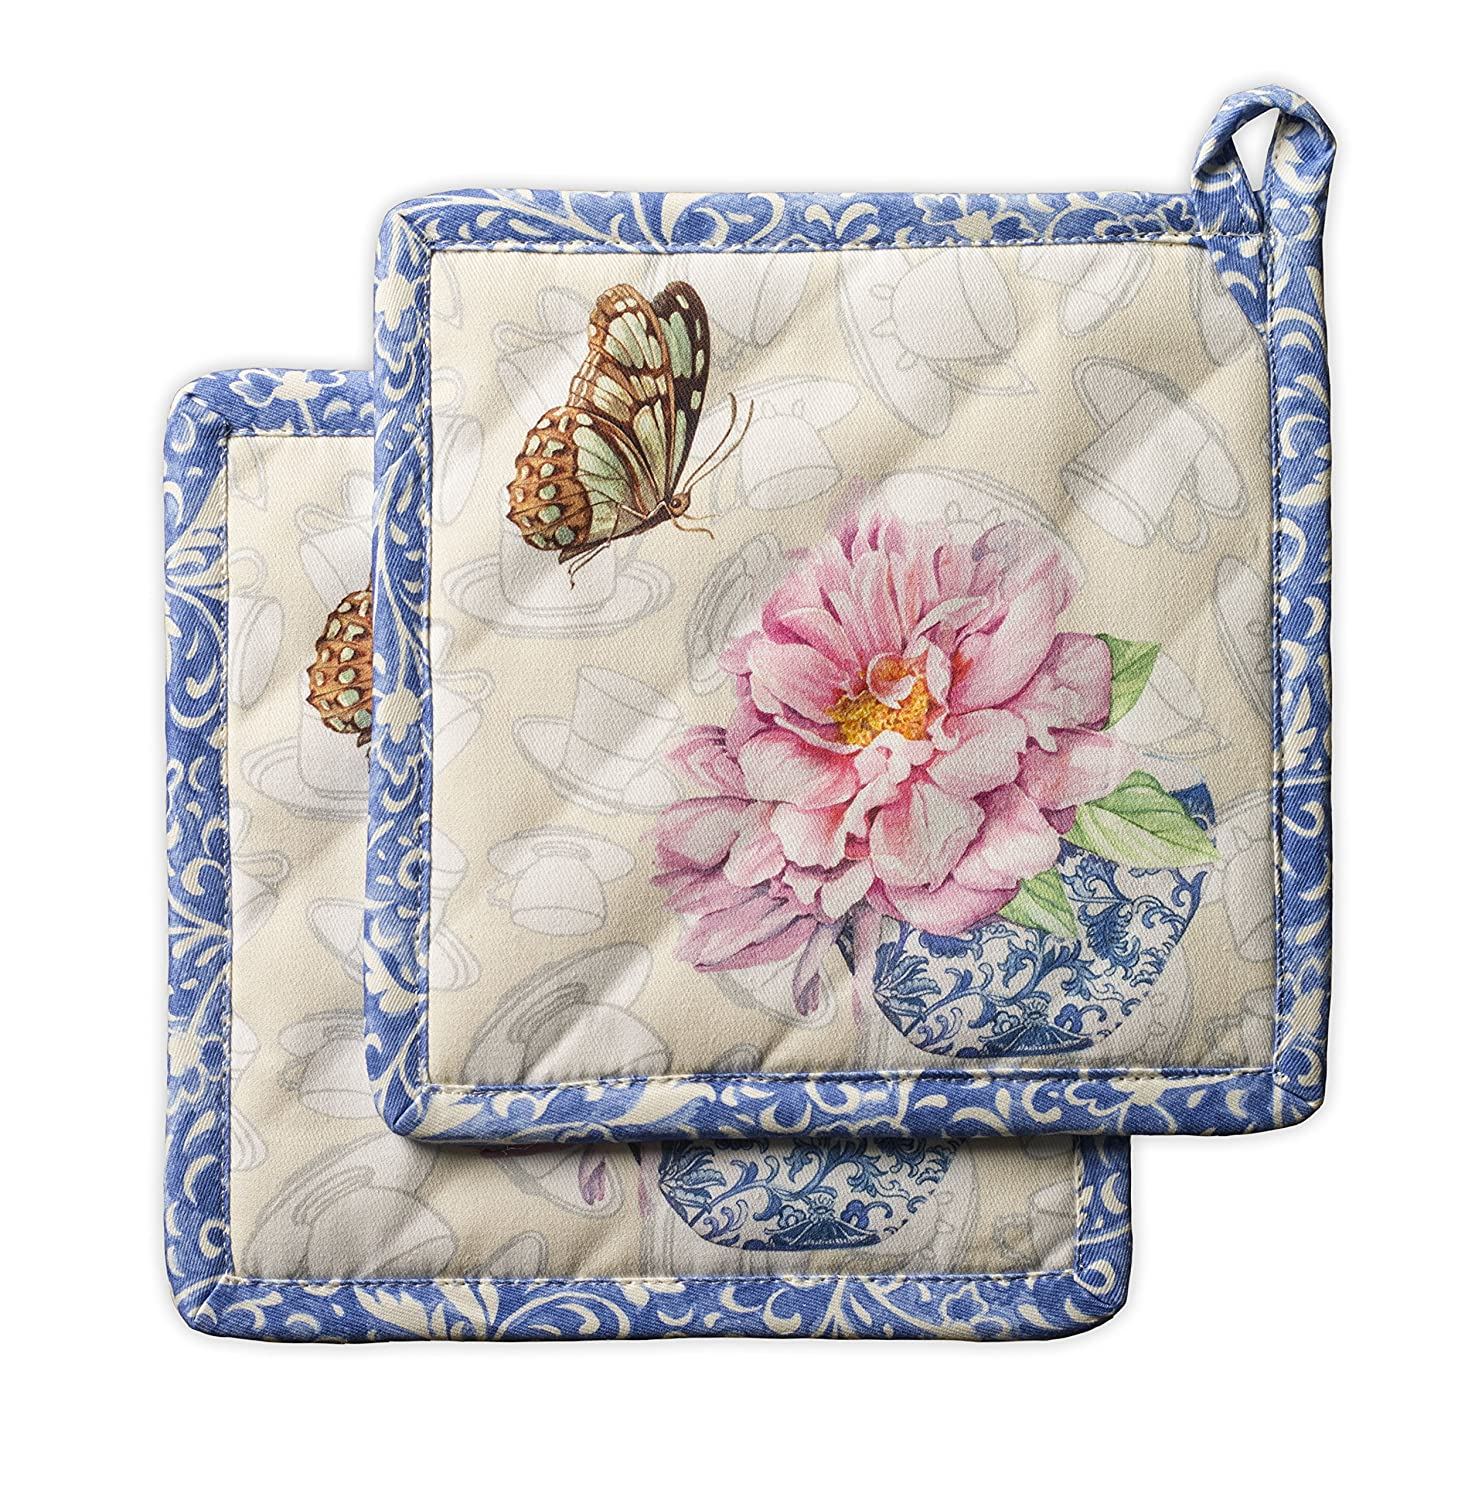 Maison d' Hermine Canton 100% Cotton Set of 2 Pot Holders 8 Inch by 8 Inch Aspero